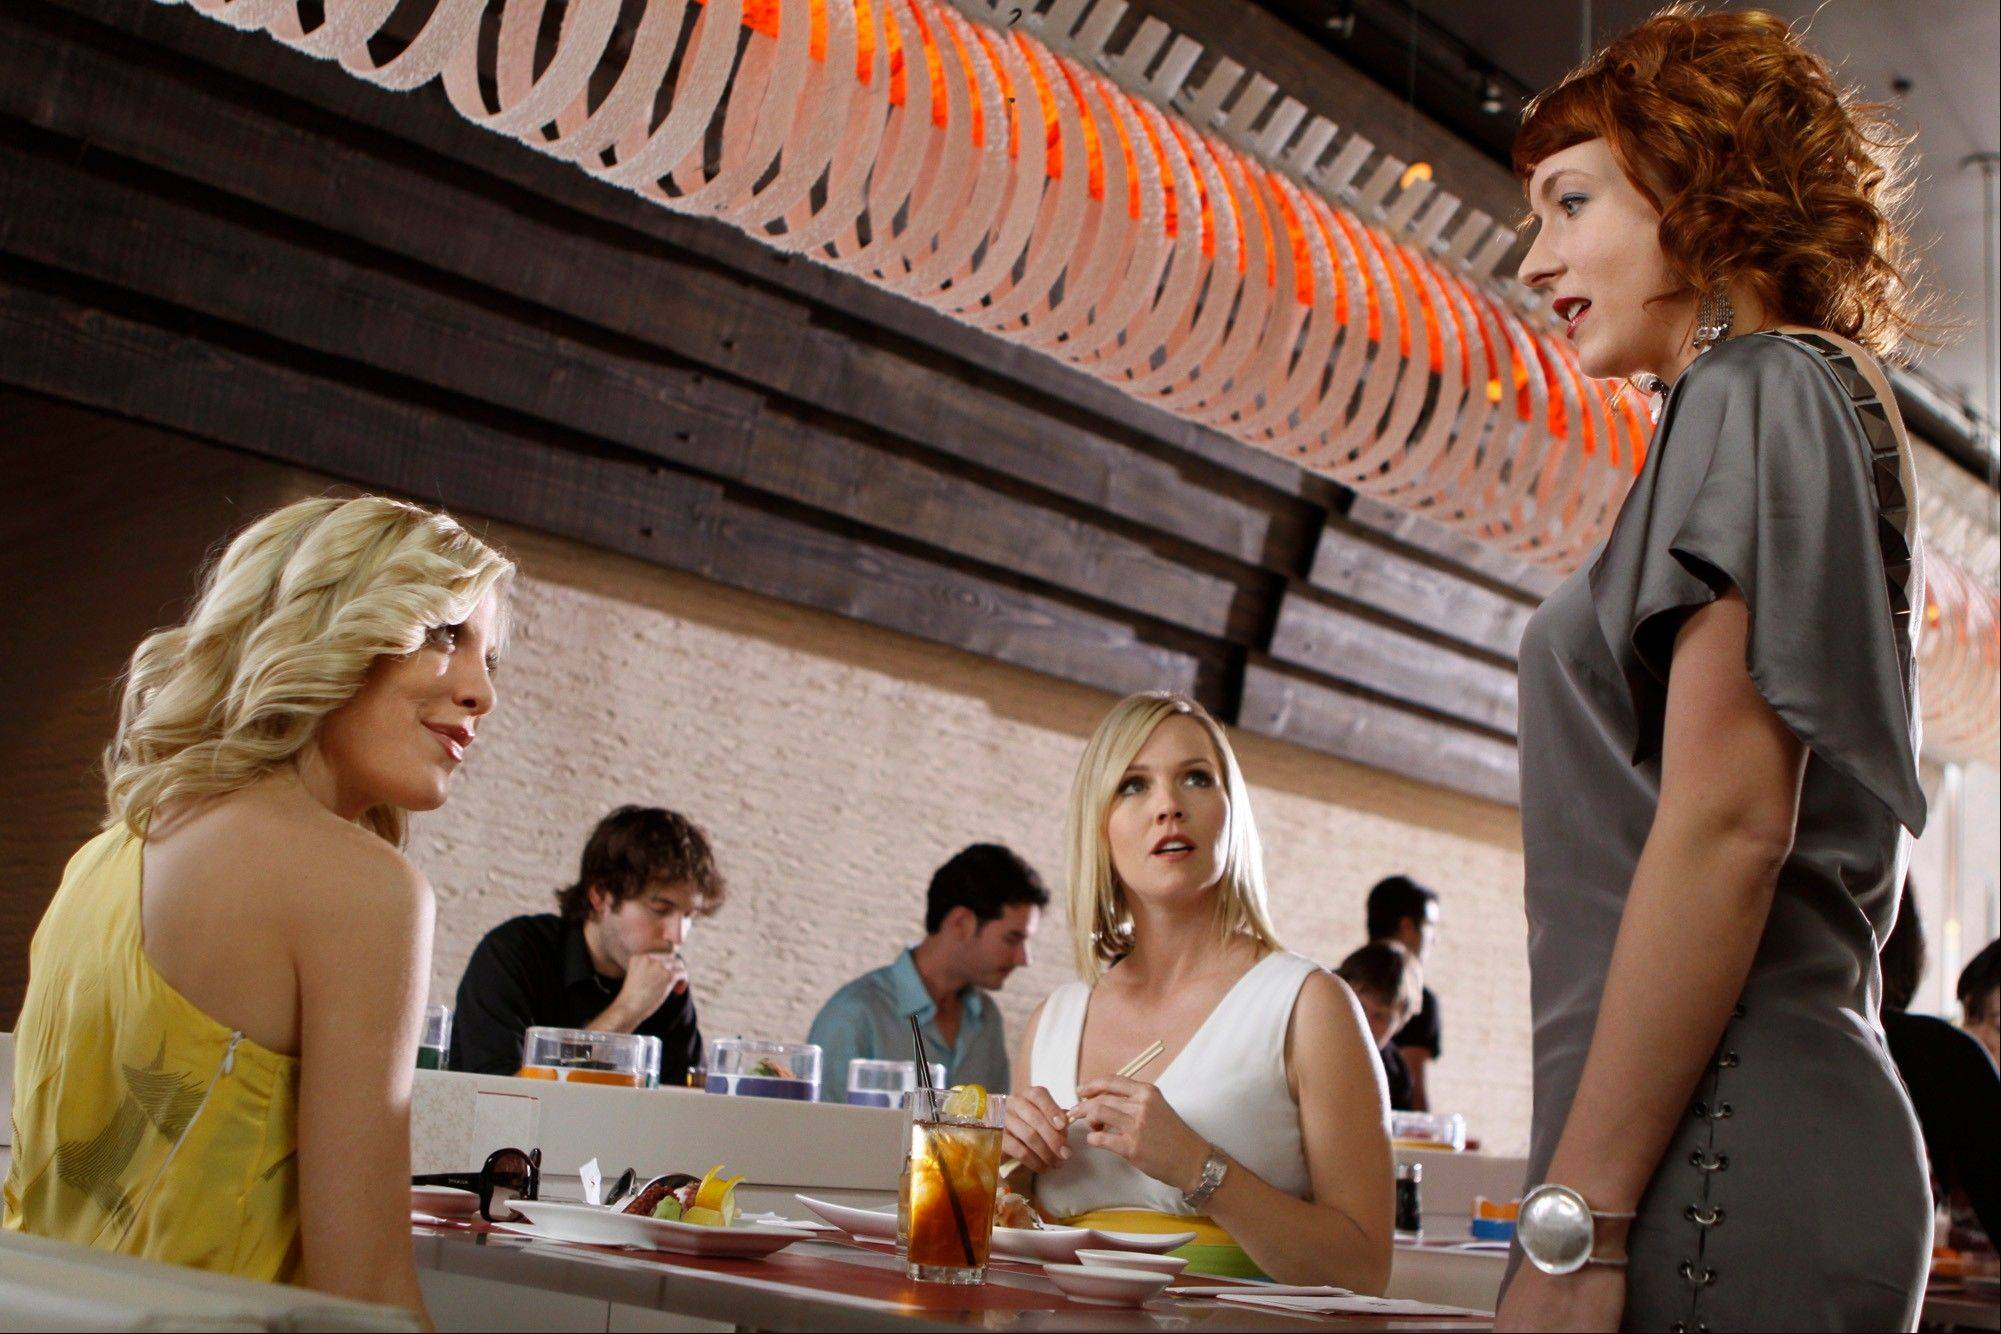 Tori Spelling, left, Jennie Garth and Diablo Cody are shown in a scene from �90210.� The CW network announced Thursday that the show will wrap in May after five seasons.